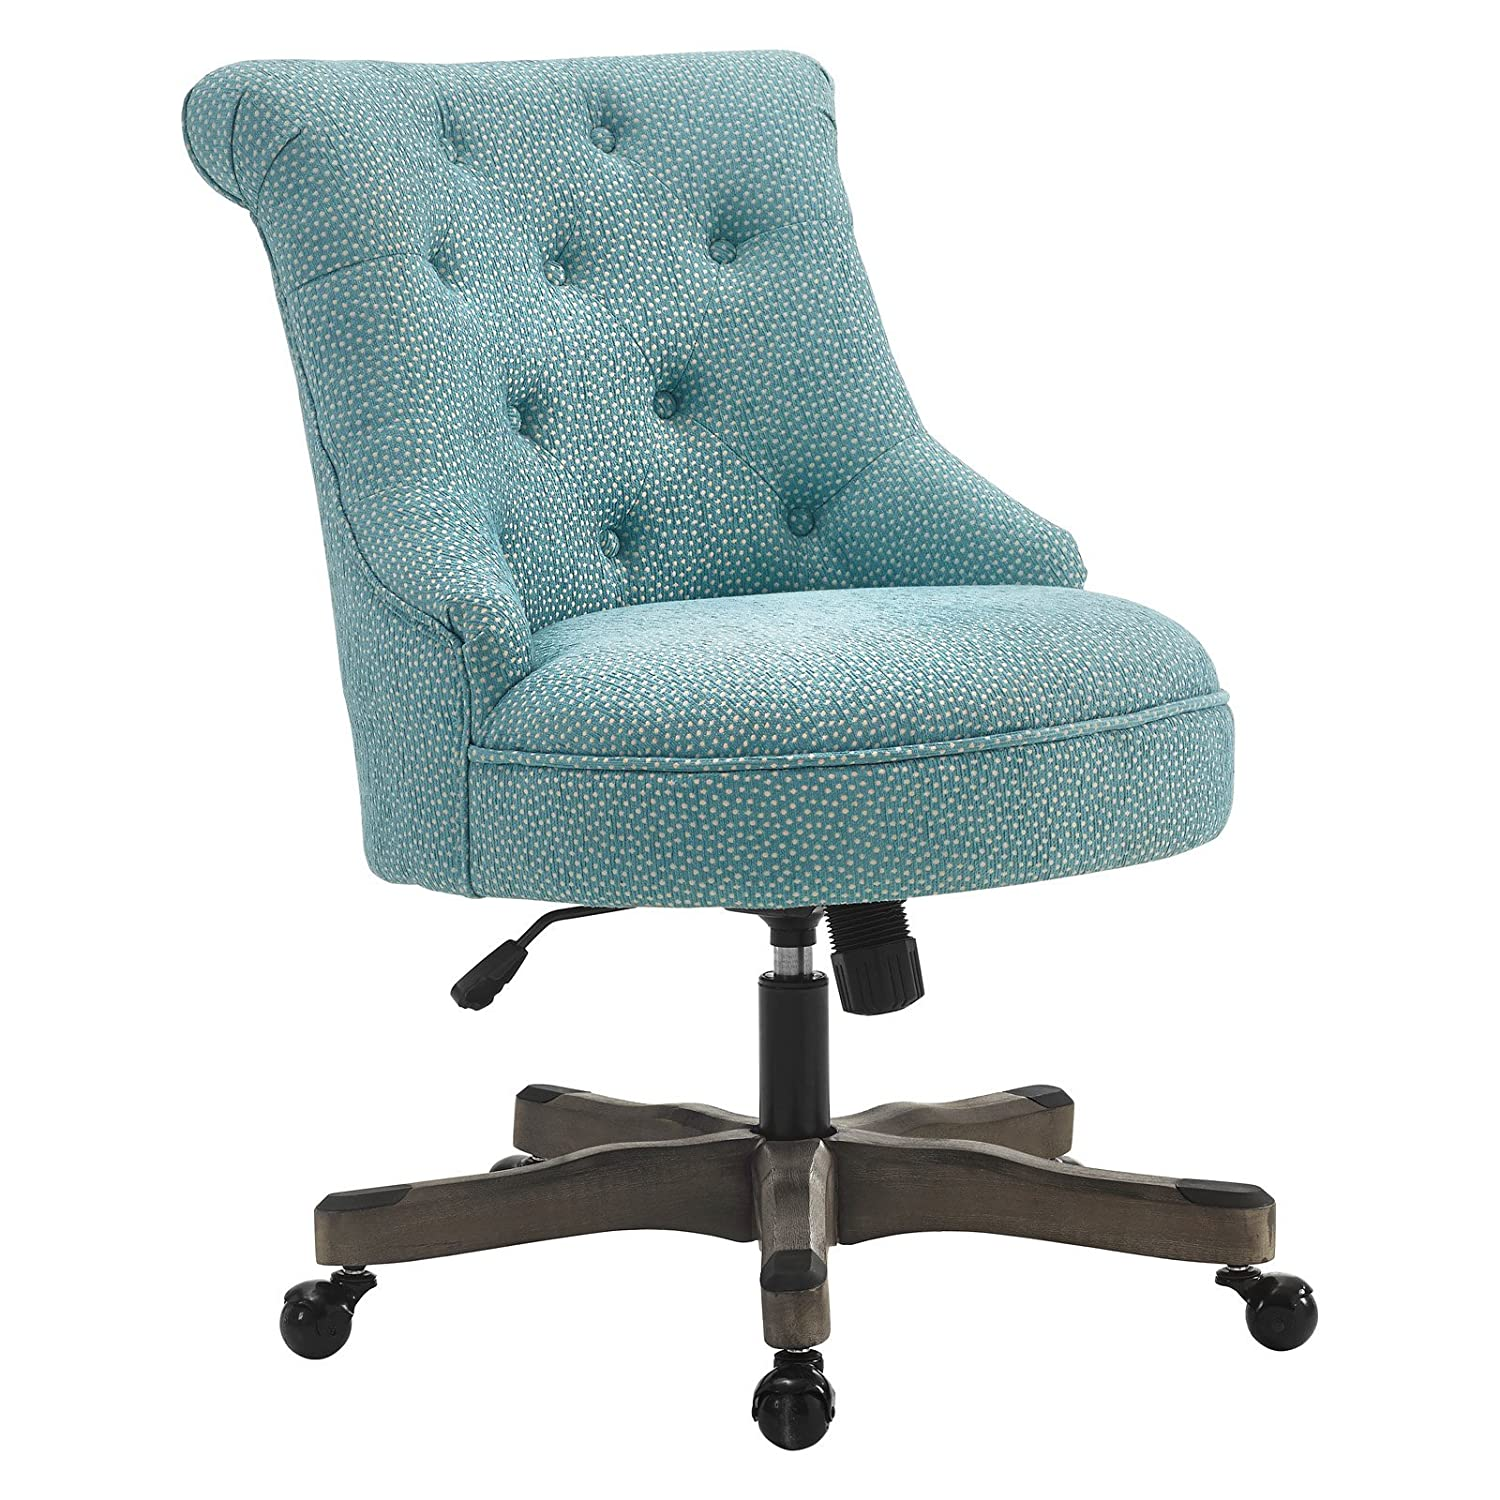 Amazon fice Chair in Green fice Products